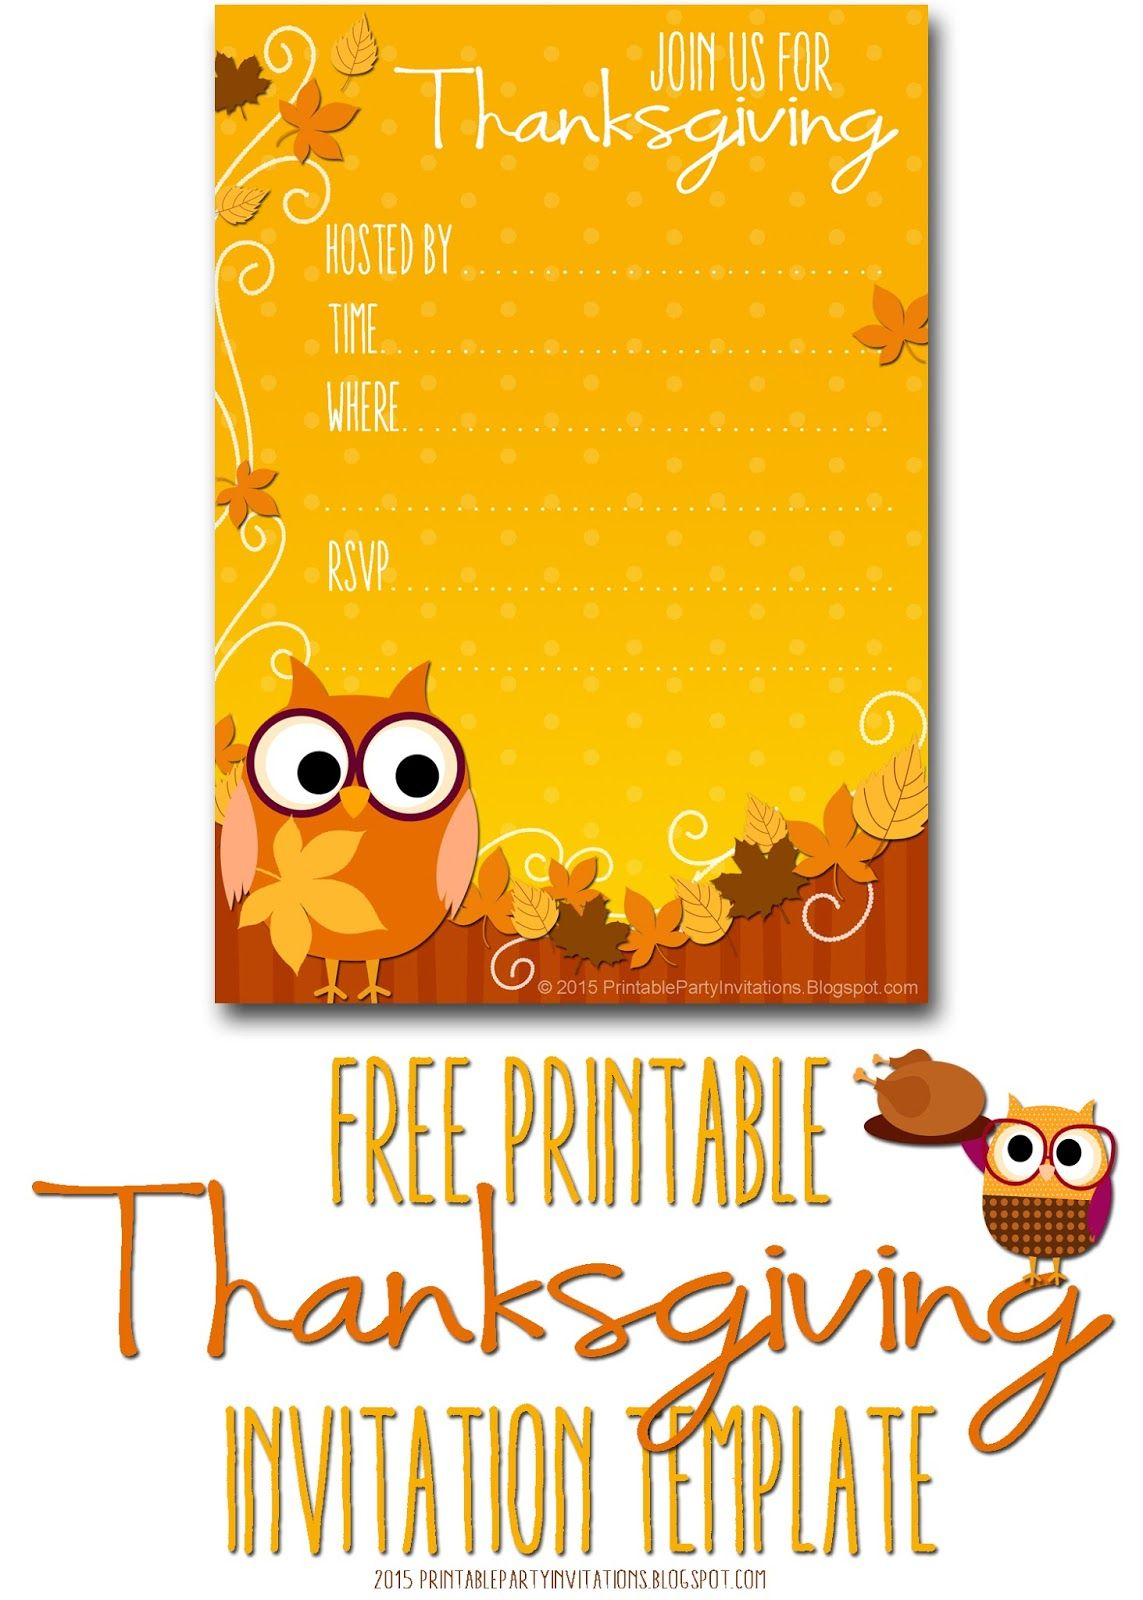 Professionally Designed Free Printable Party Invitations For Nearly - Thanksgiving party invitation templates